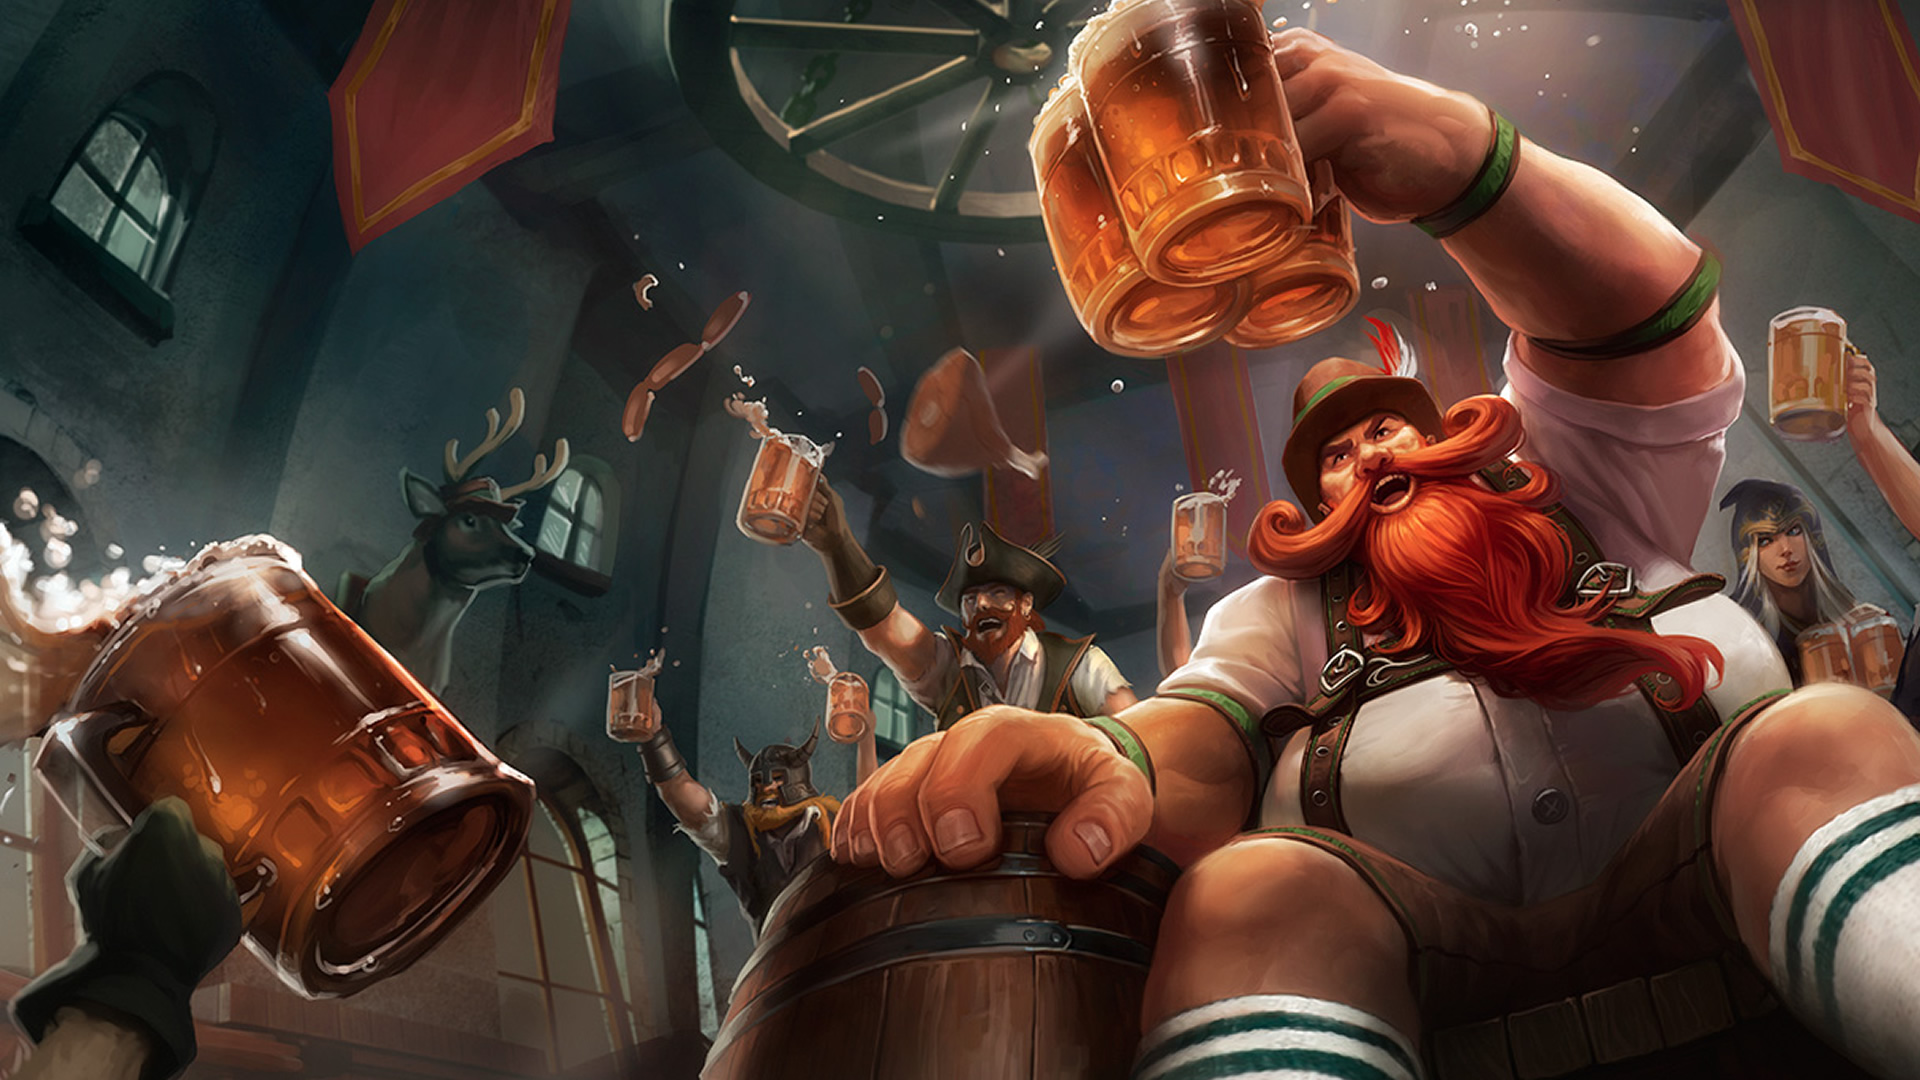 Oktoberfest Wallpapers Wallpapers High Quality Download 1920x1080